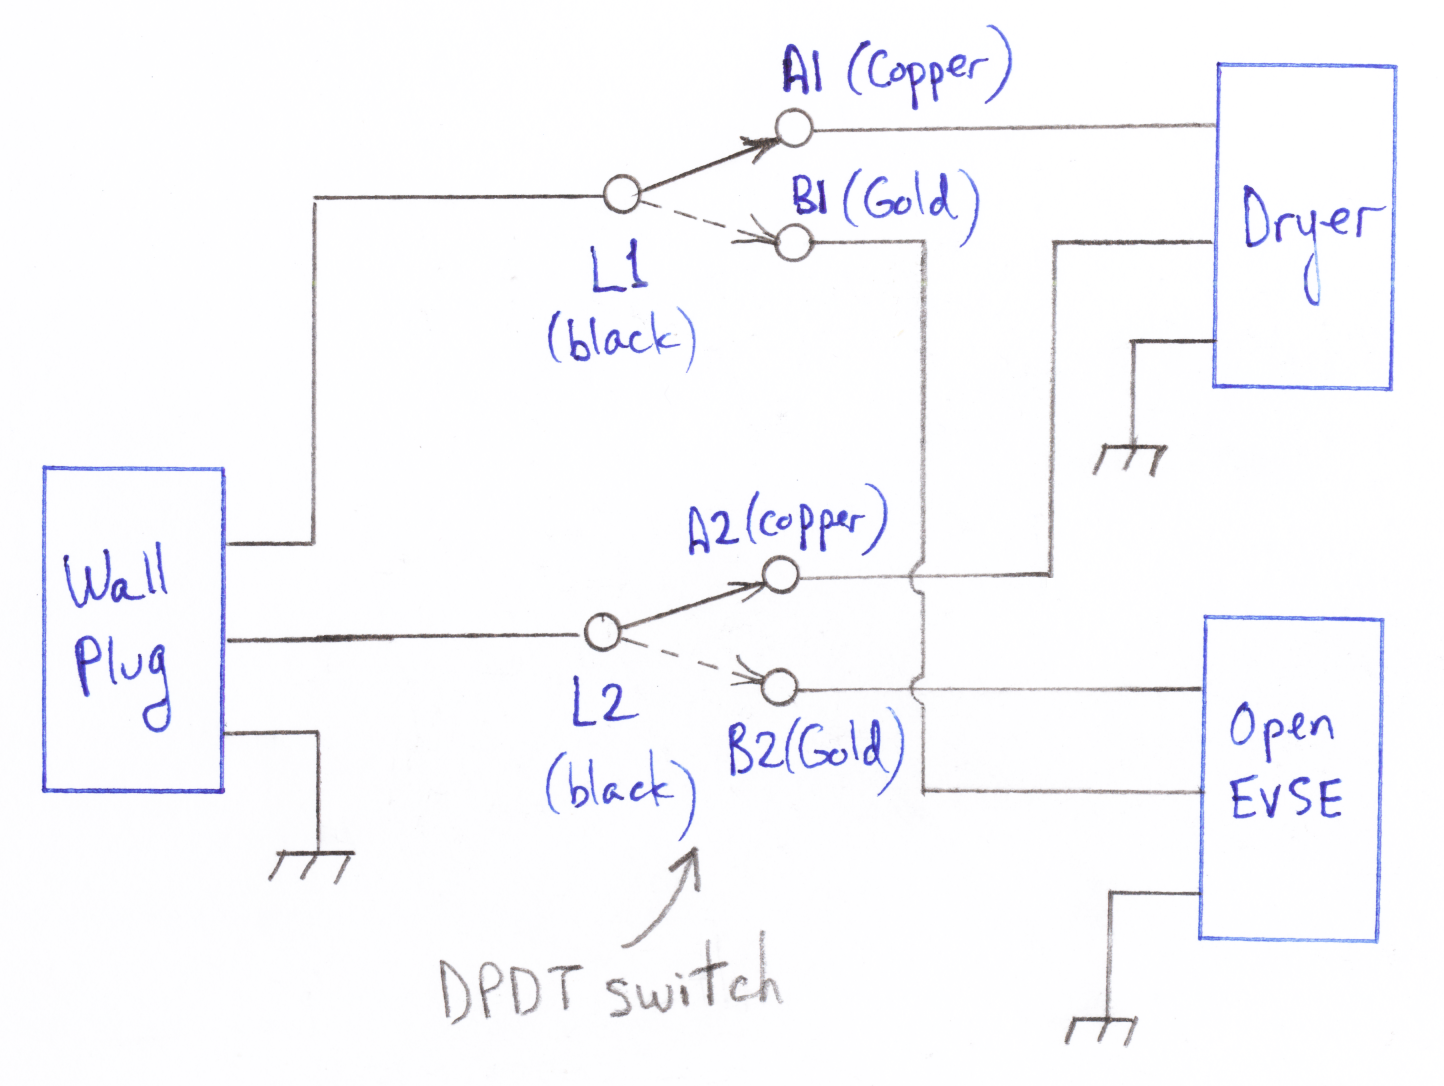 Ev Charger Wiring Diagram Library Battery Monitor Circuit Likewise Nicd Schematic Its Crucial To Connect The Ground Of 3 Components Plug Dryer